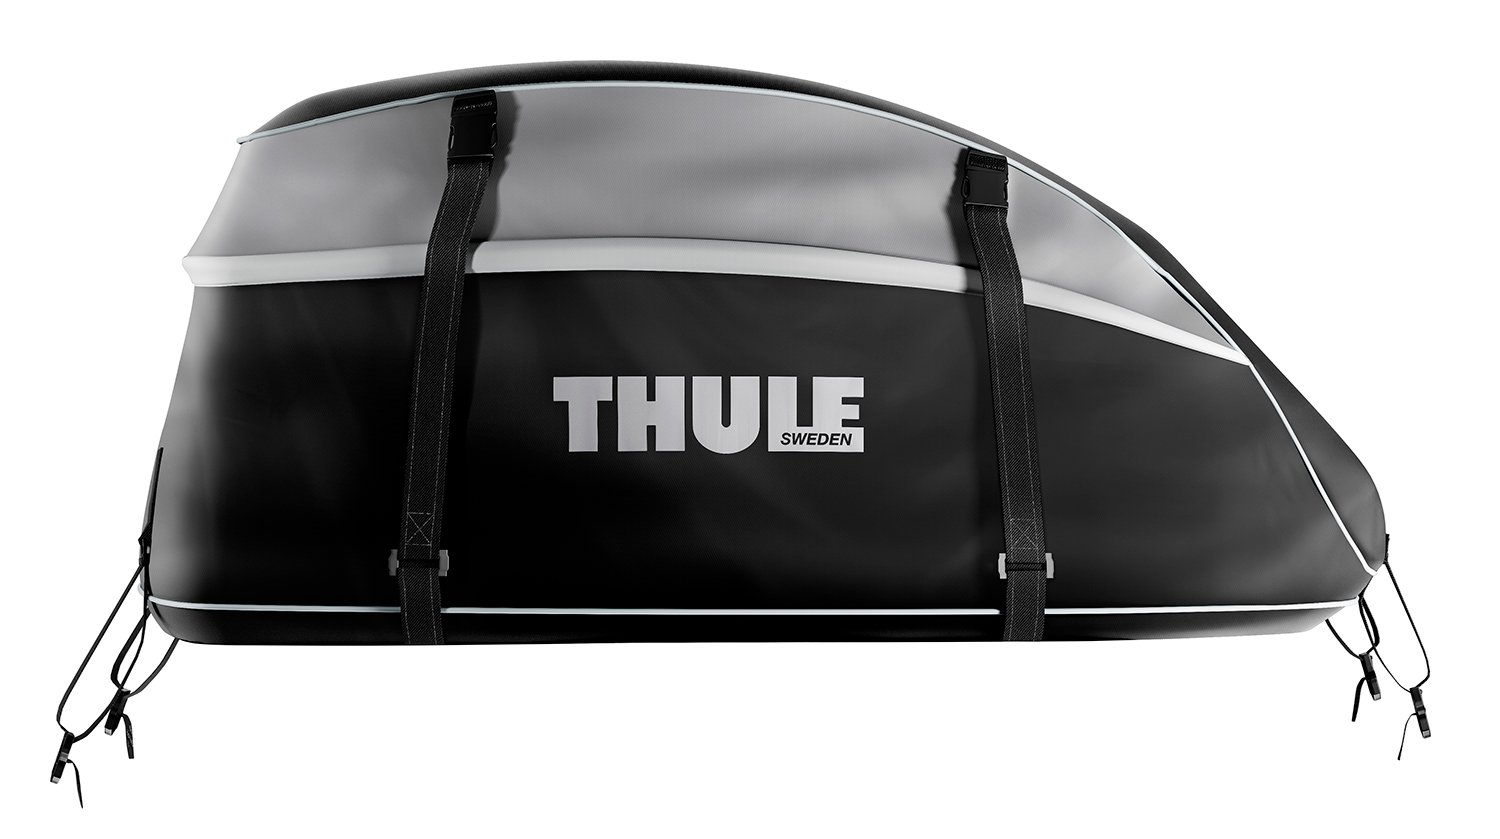 Thule Interstate Roof Cargo Bag Ipx3 896 Carrier